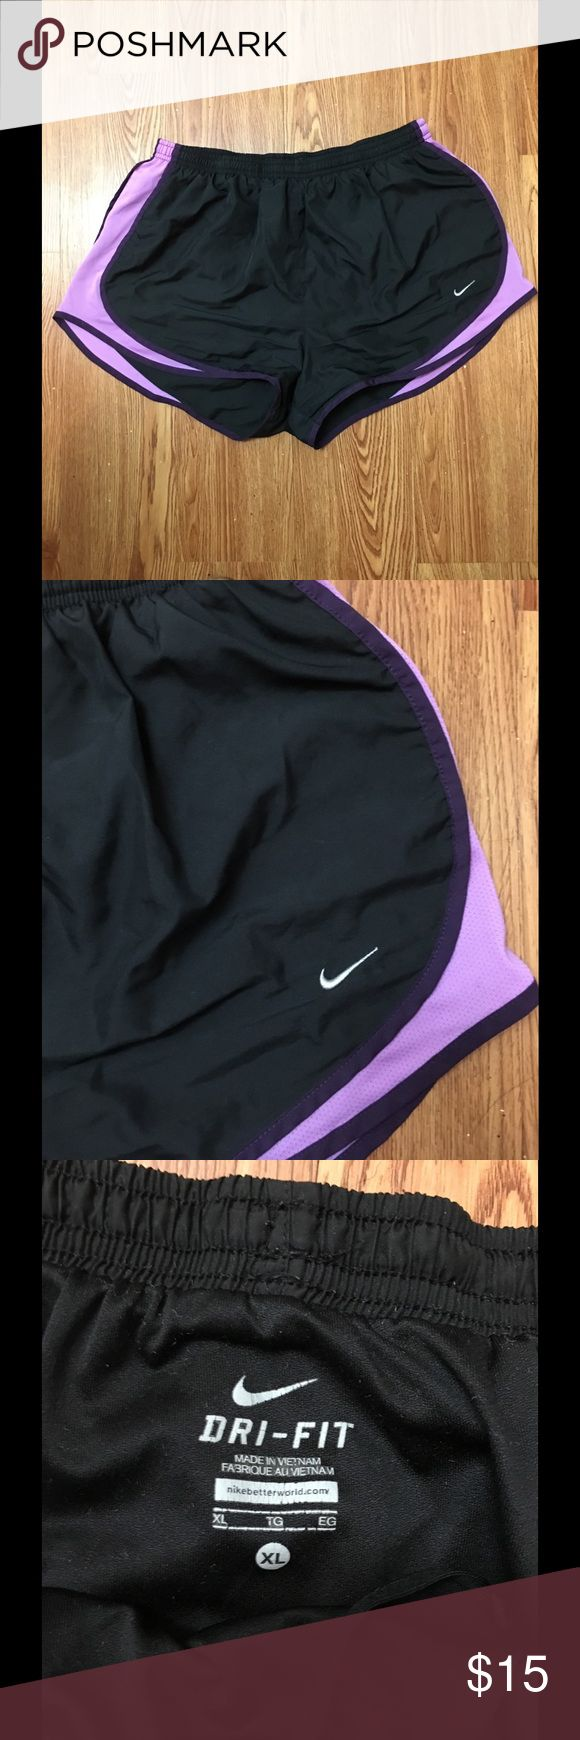 Nike Dri Fit Running Shorts These light weight shorts are perfect for just about everything. They are great for a summer walk, a couple mile jog, or just running around for the day. They have been gently worn, but taken great care of! Just sadly, do not fit me anymore. Nike Shorts